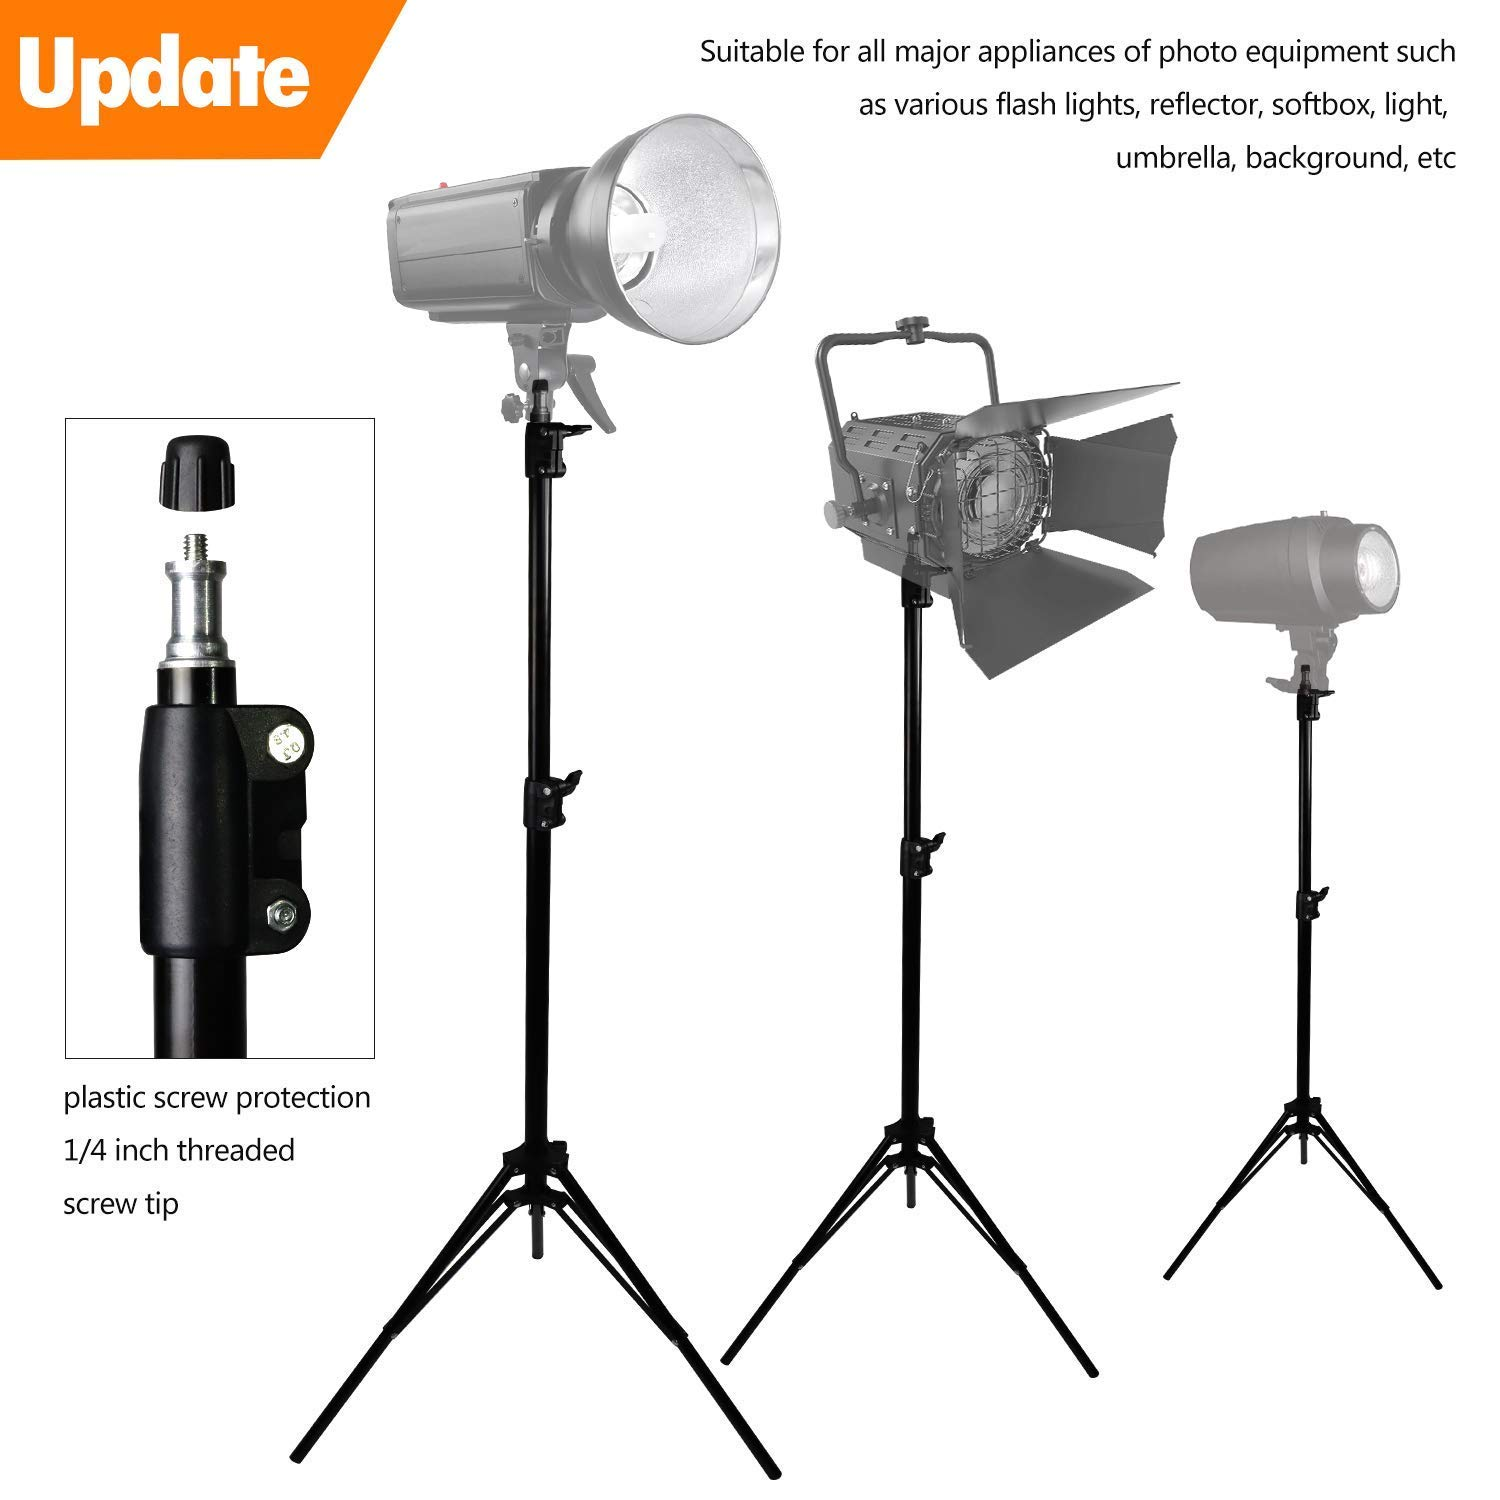 MOUNTDOG Upgraded 6.5 Ft/ 200CM / 78inch Photography Tripod Light Stand Aluminum Alloy Photographic Stand for Studio Reflector Softbox Umbrellas-6.5ftX2 ¡­ by MOUNTDOG (Image #6)